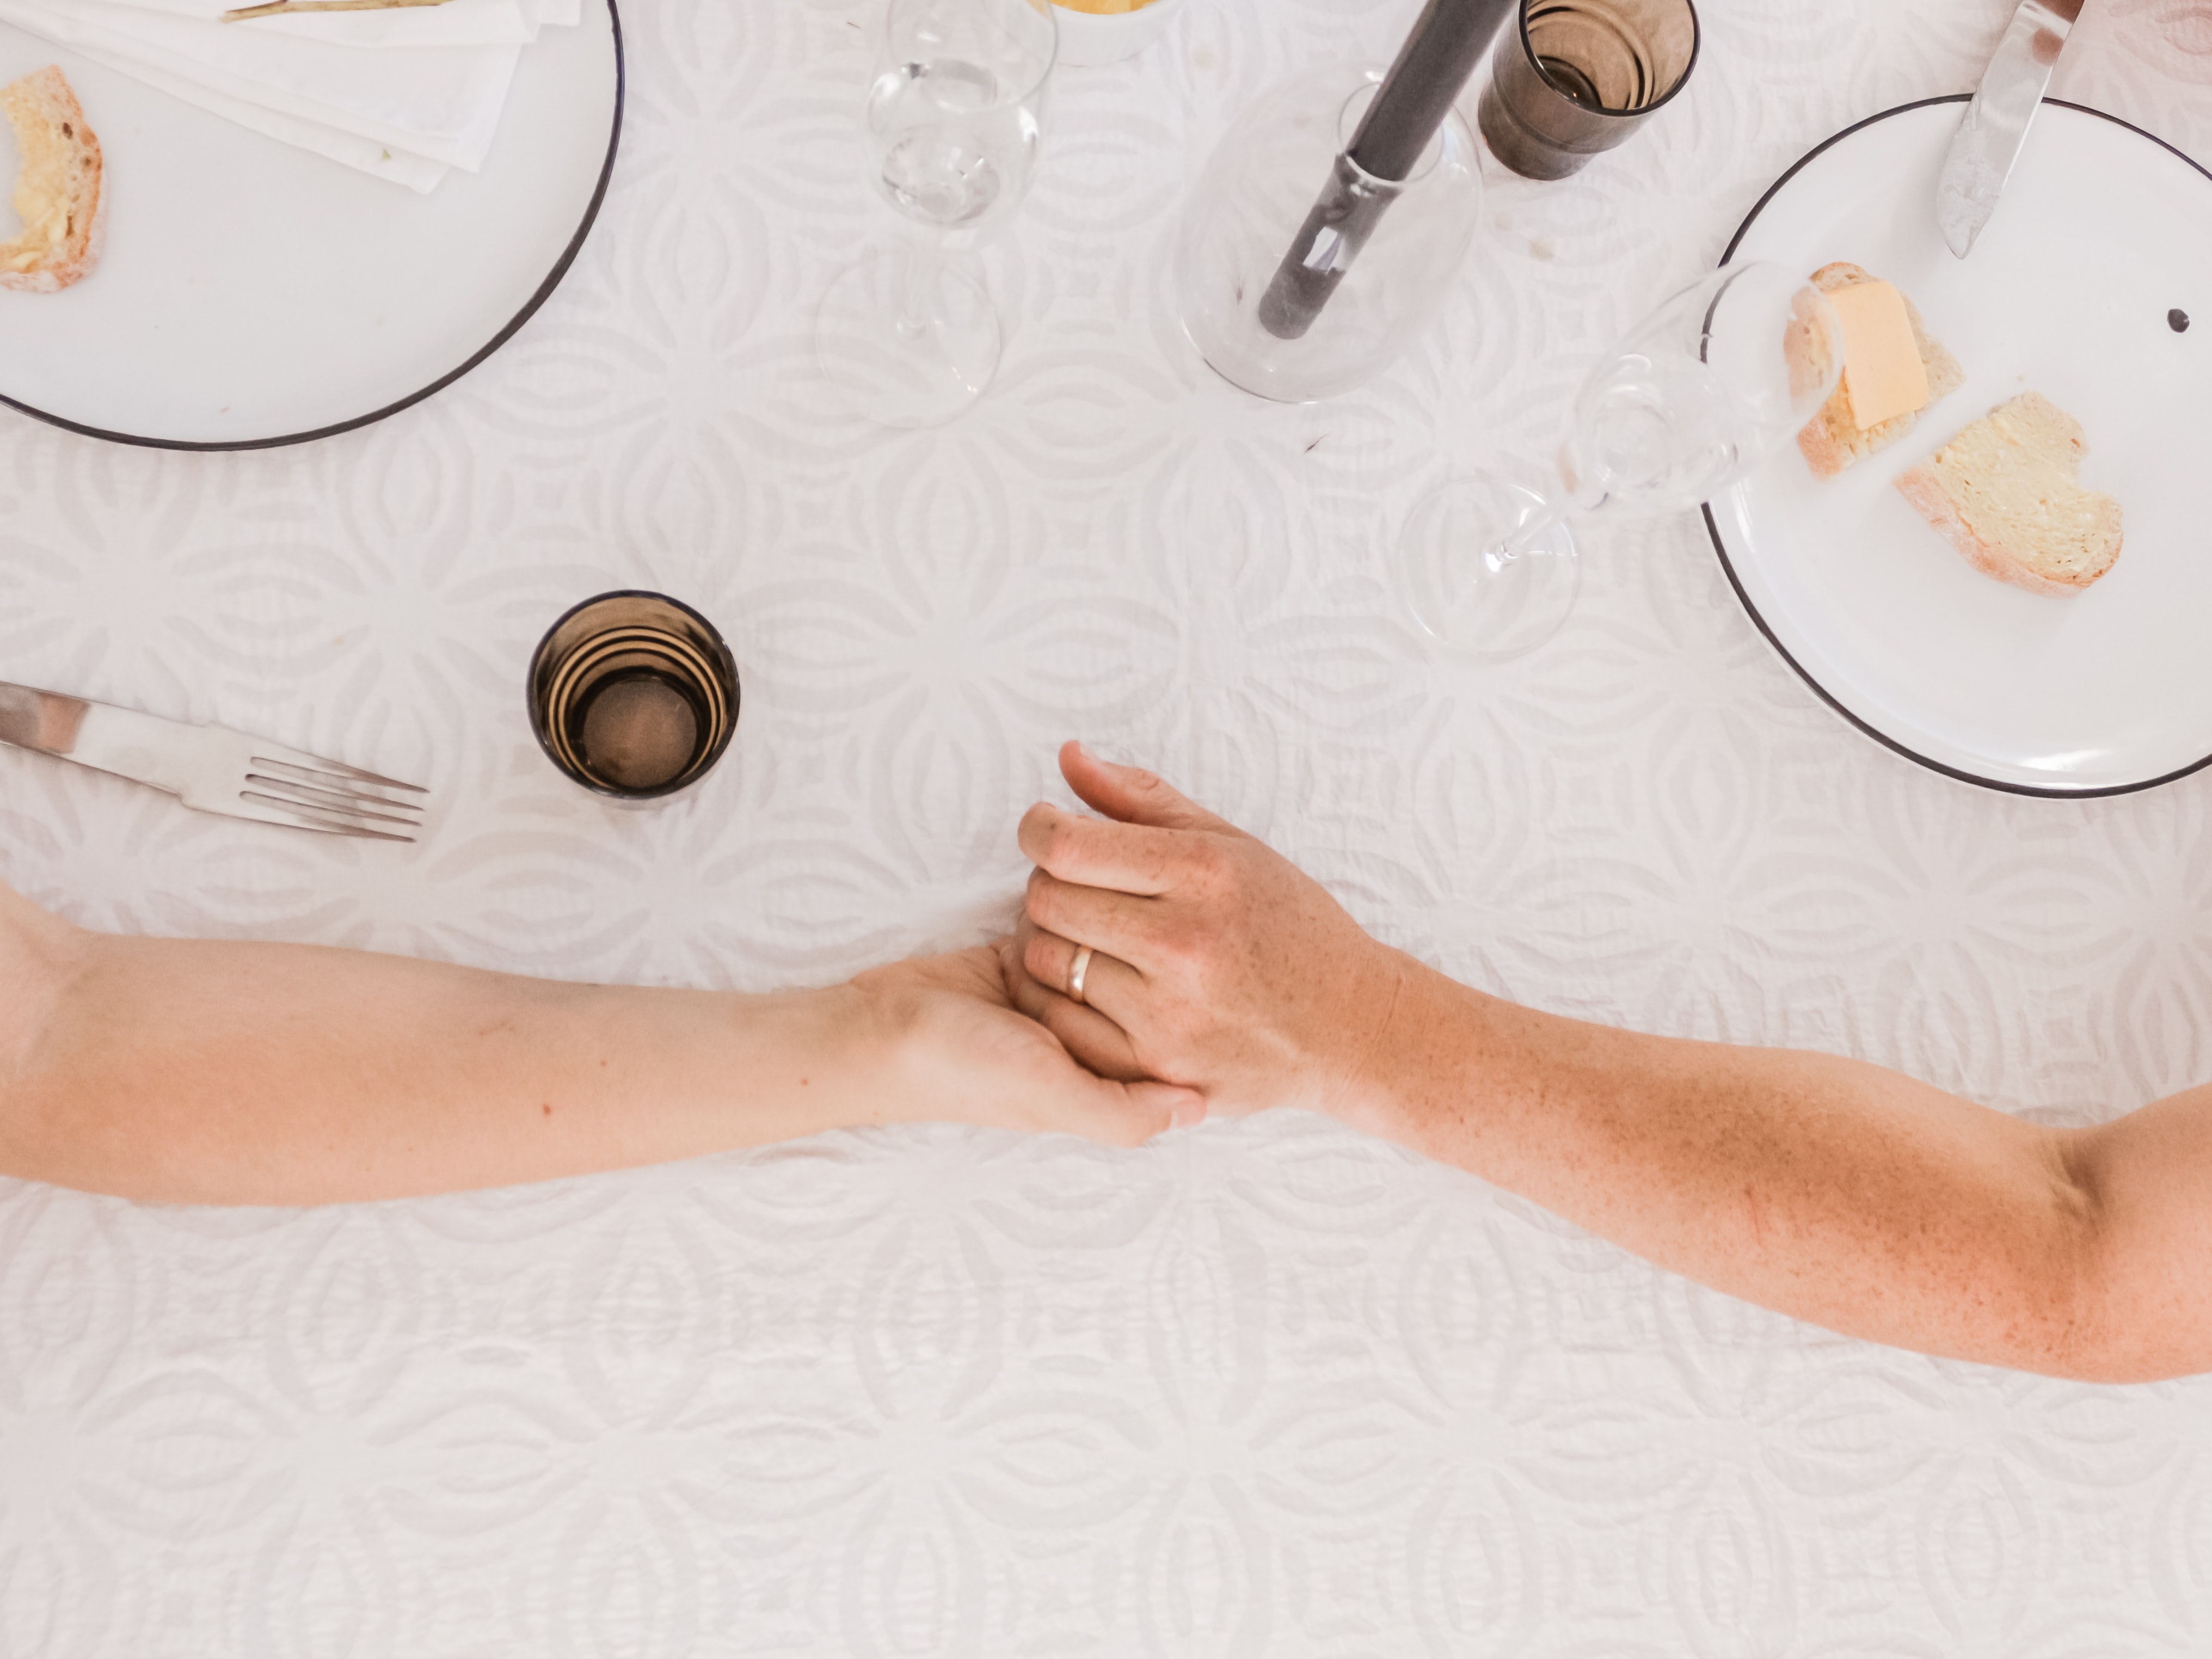 man and woman holding hands on tablecloth near plates and cups